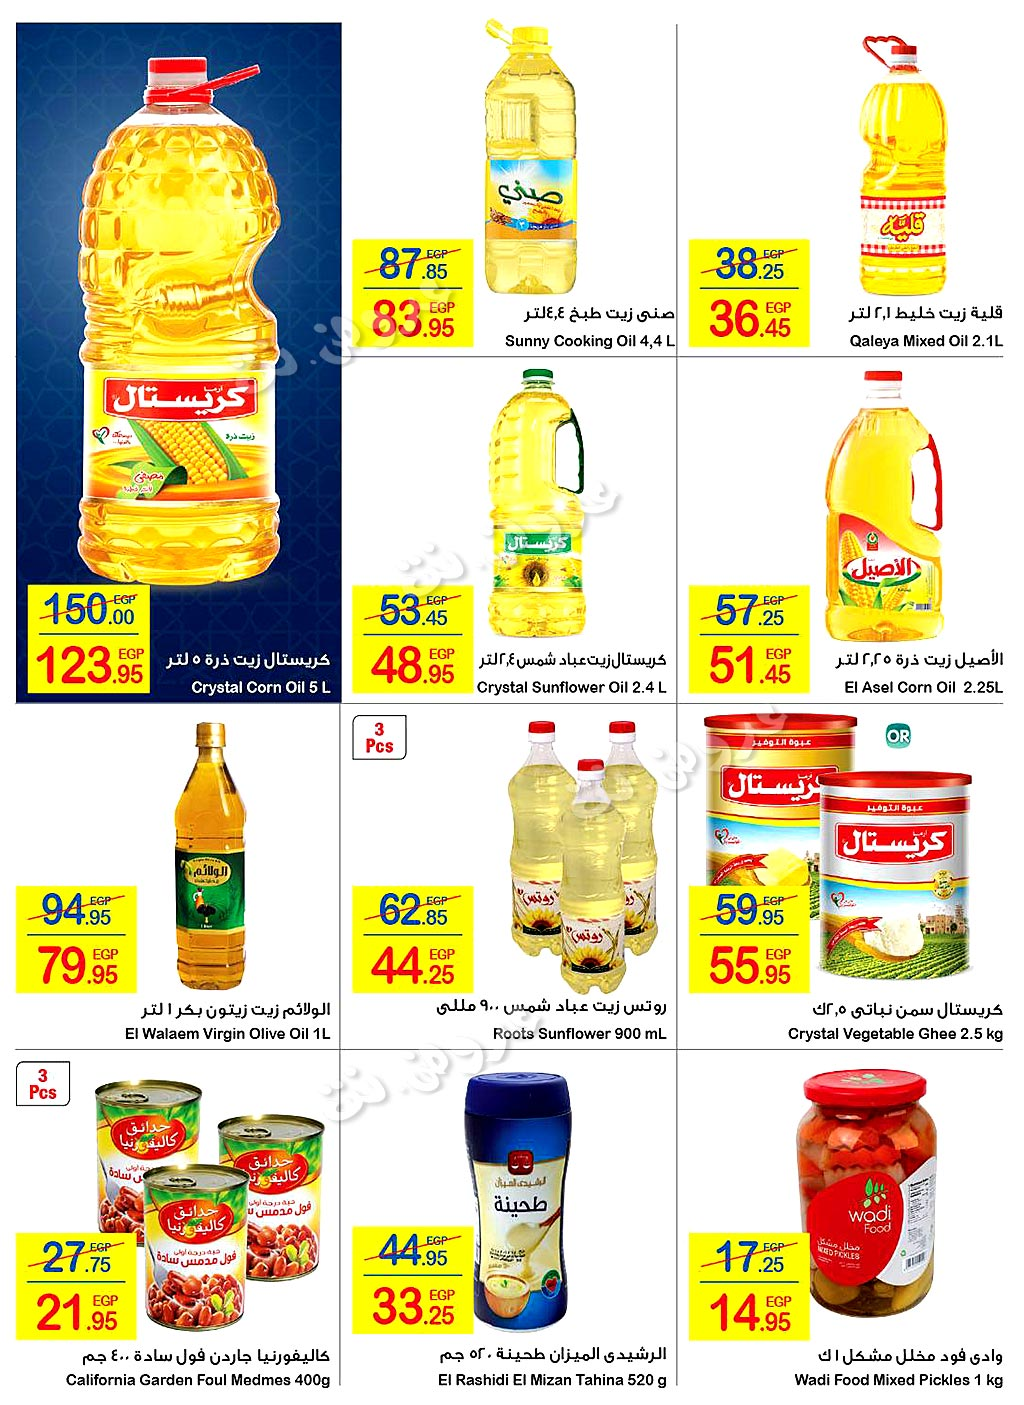 carrefour-market offers from 29july to 14aug 2019 page number 7 عروض كارفور ماركت من 29 يوليو حتى 14 أغسطس 2019 صفحة رقم 7